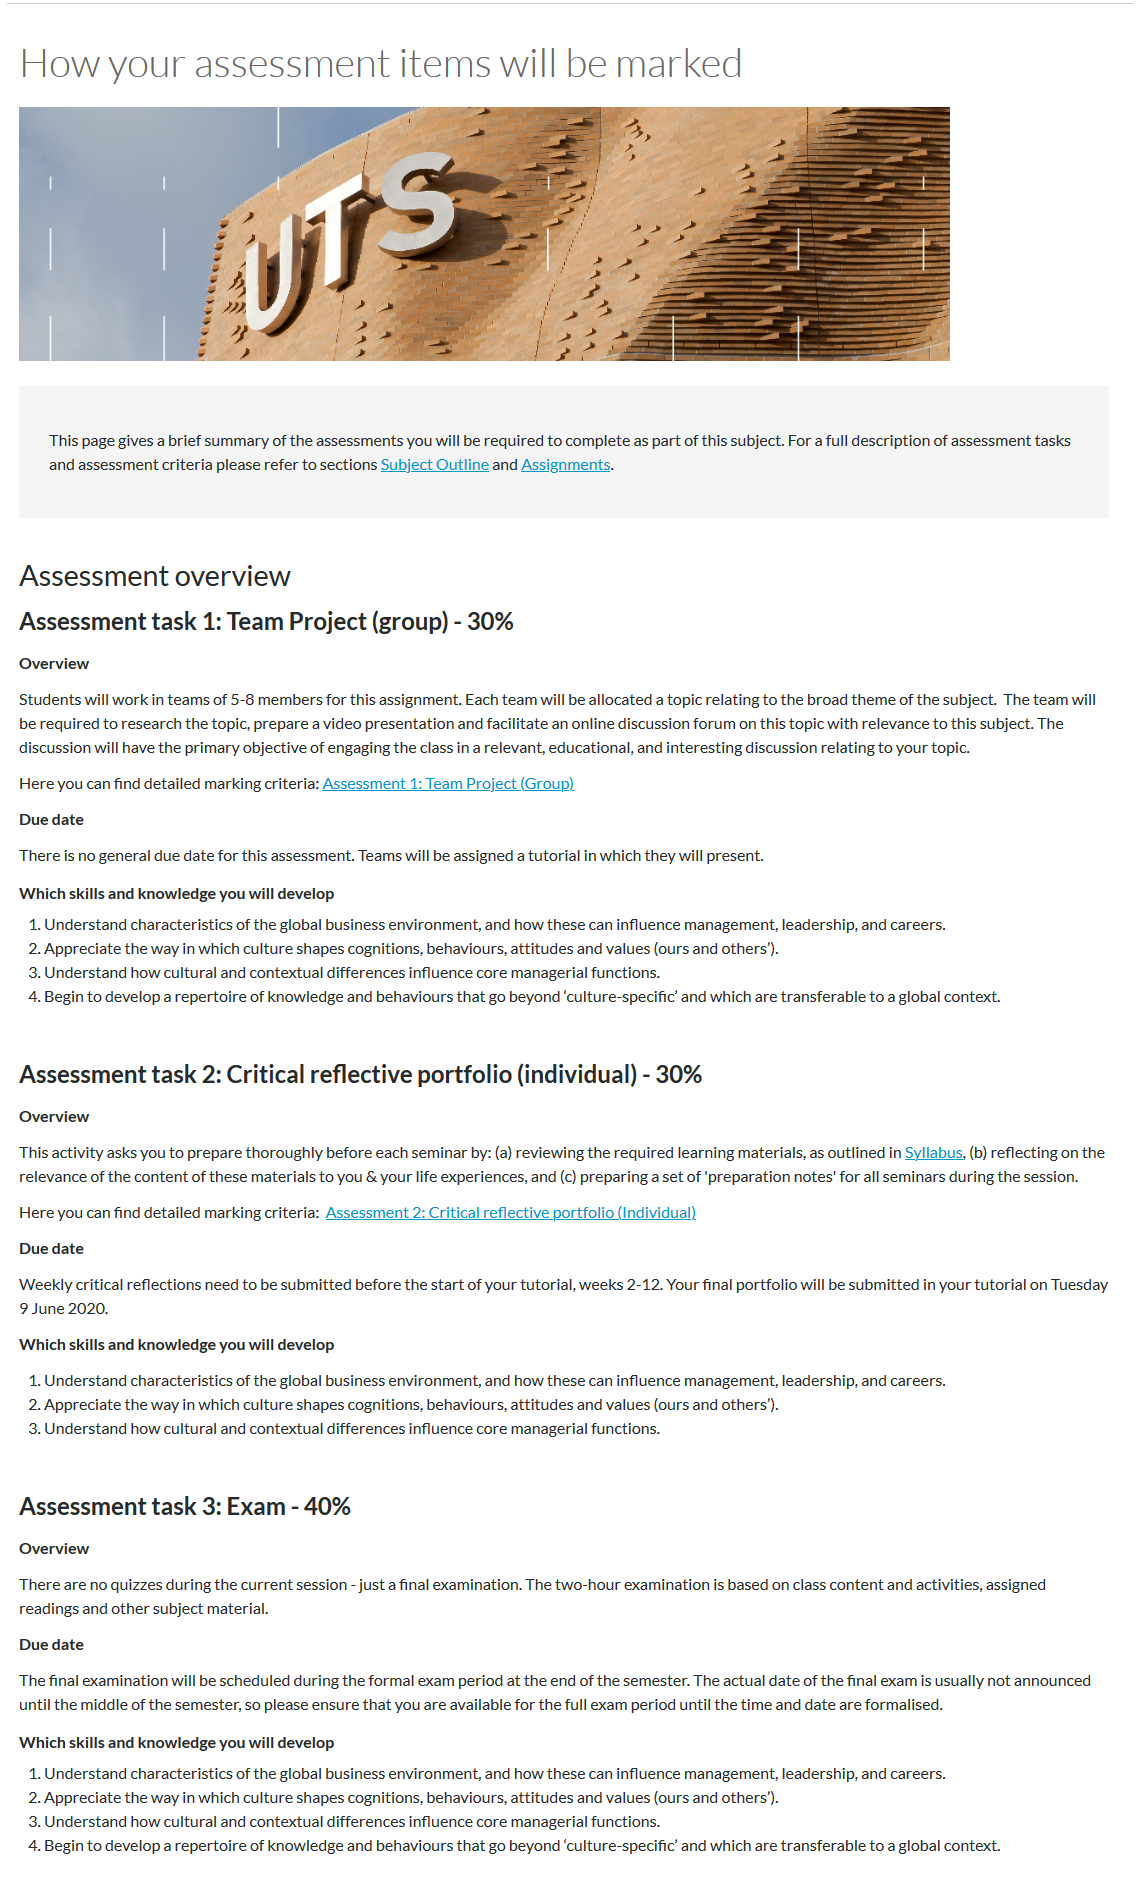 A Canvas page displaying an assessment overview of the subject. It breaks down the assessments, their due dates and the skills and knowledge developed from each task.